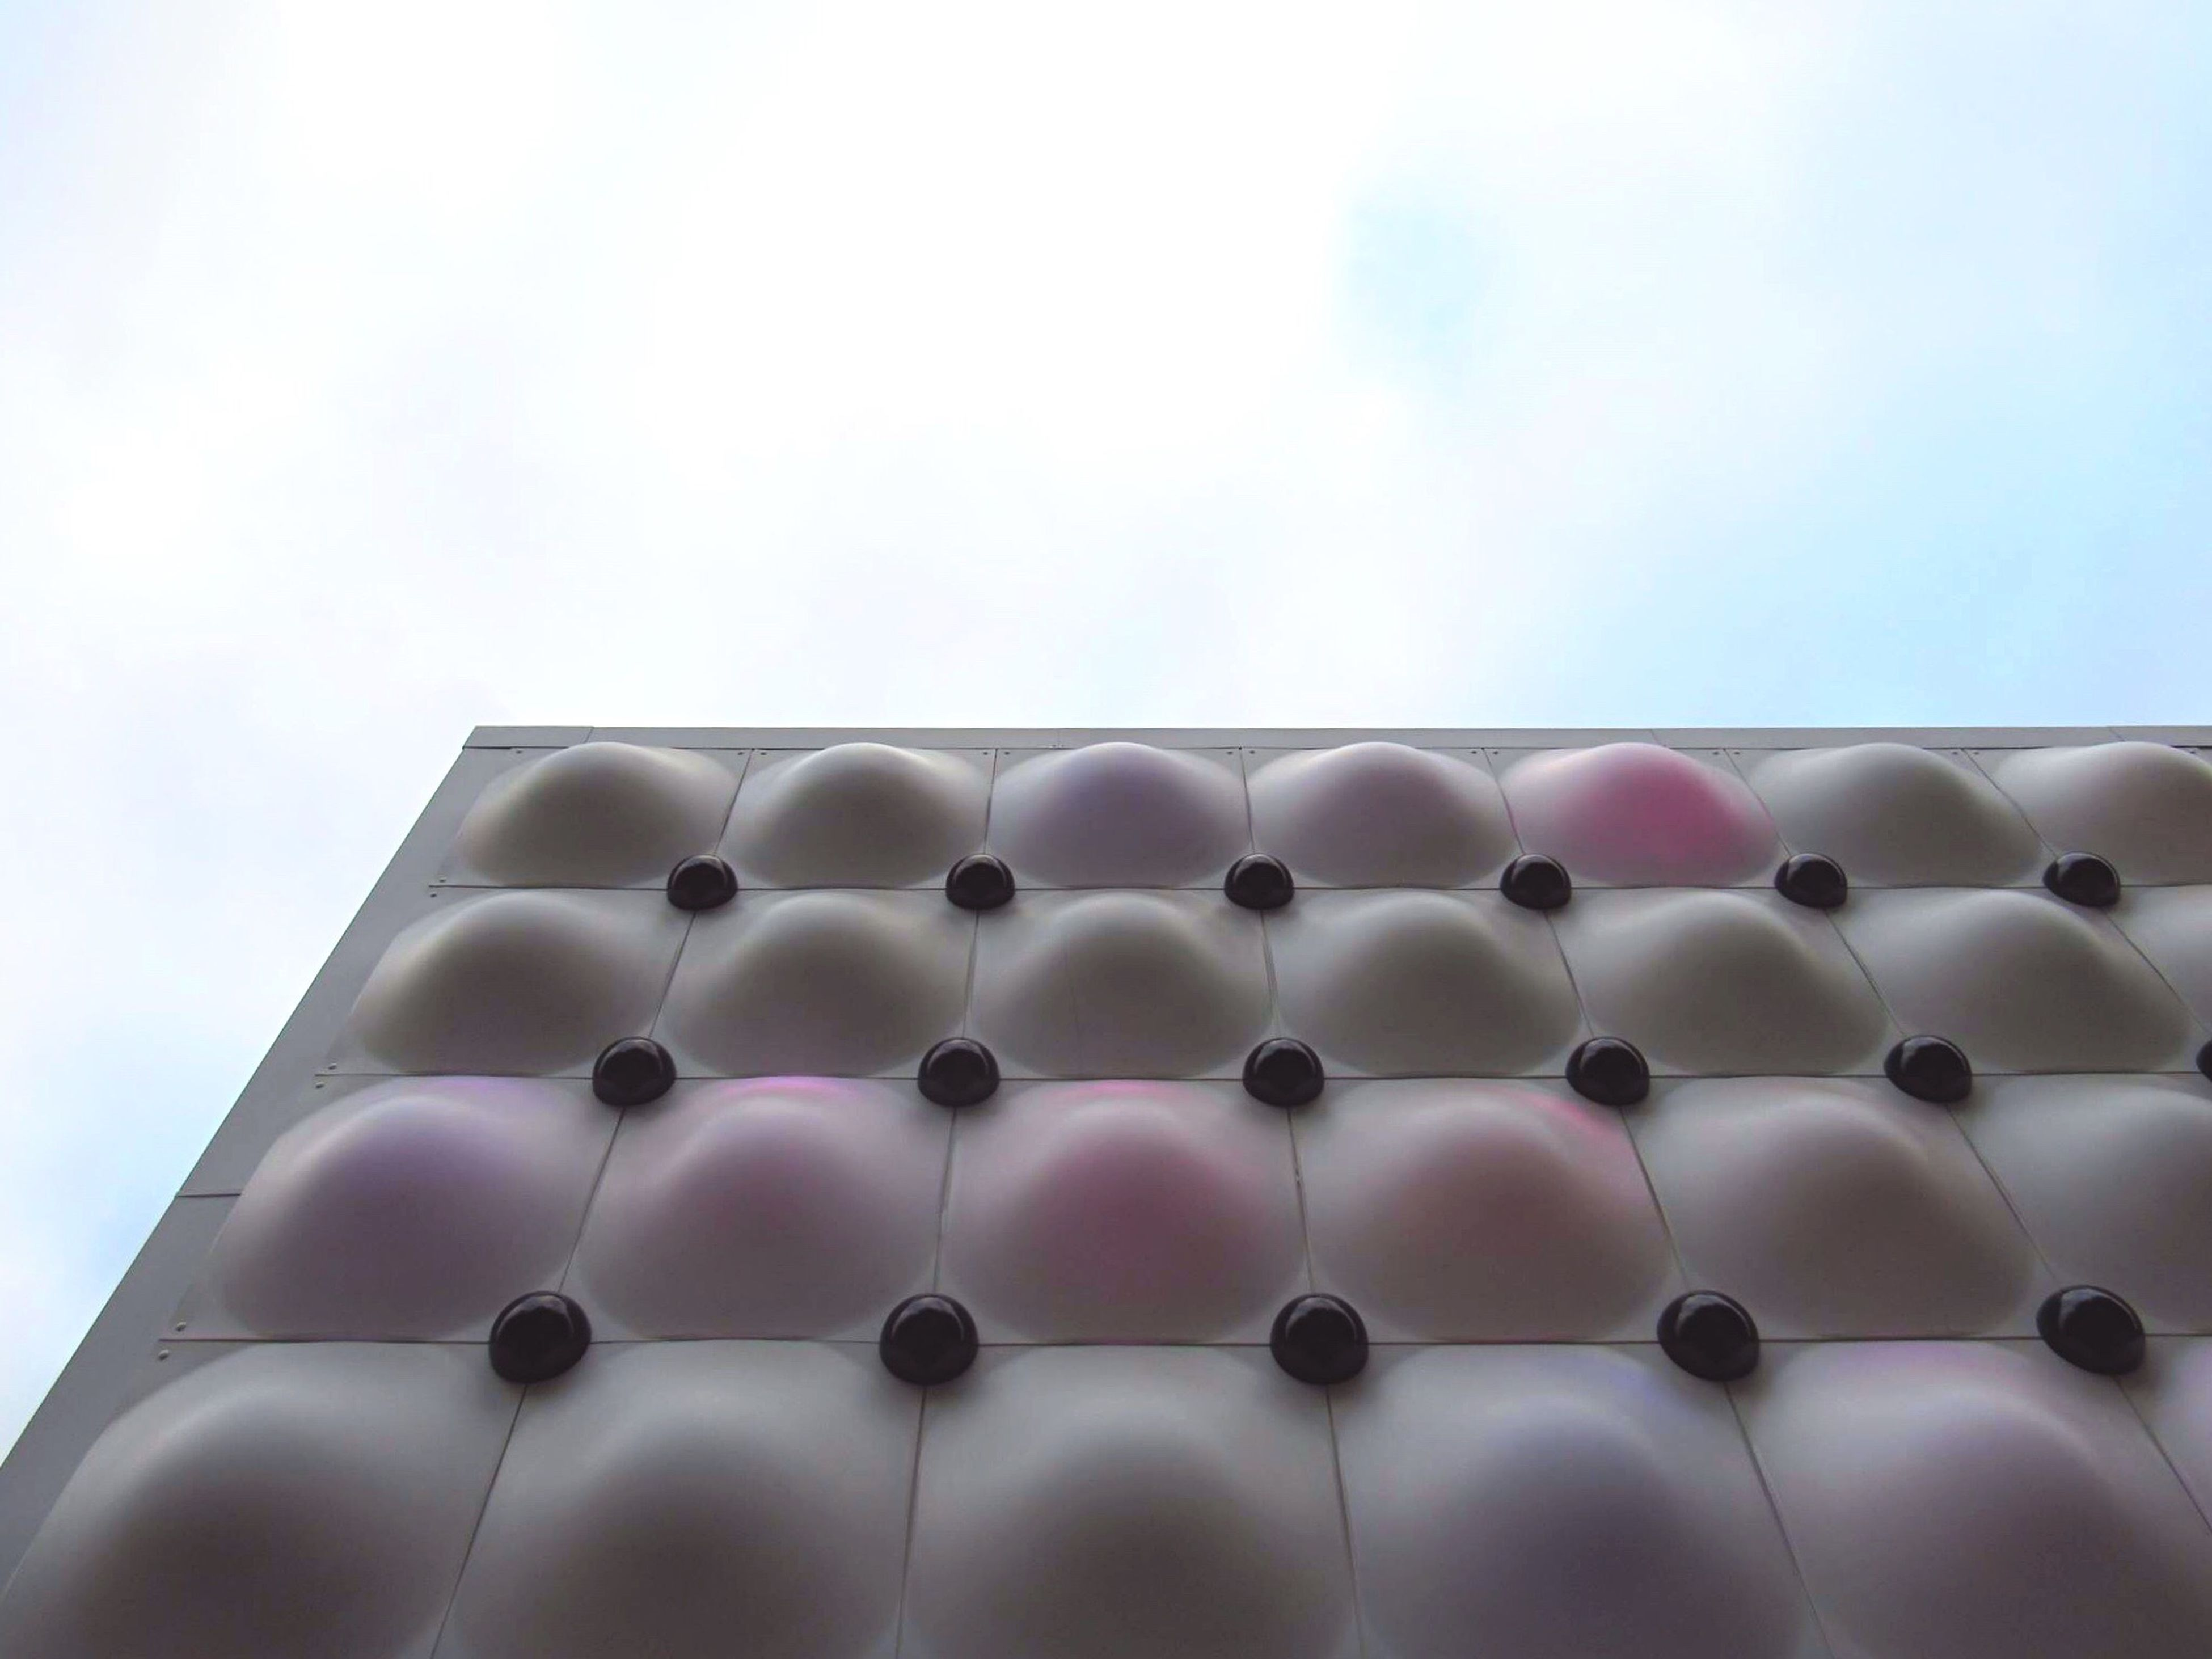 low angle view, in a row, sky, architecture, multi colored, built structure, repetition, copy space, pattern, no people, side by side, order, clear sky, building exterior, blue, shape, day, large group of objects, outdoors, decoration